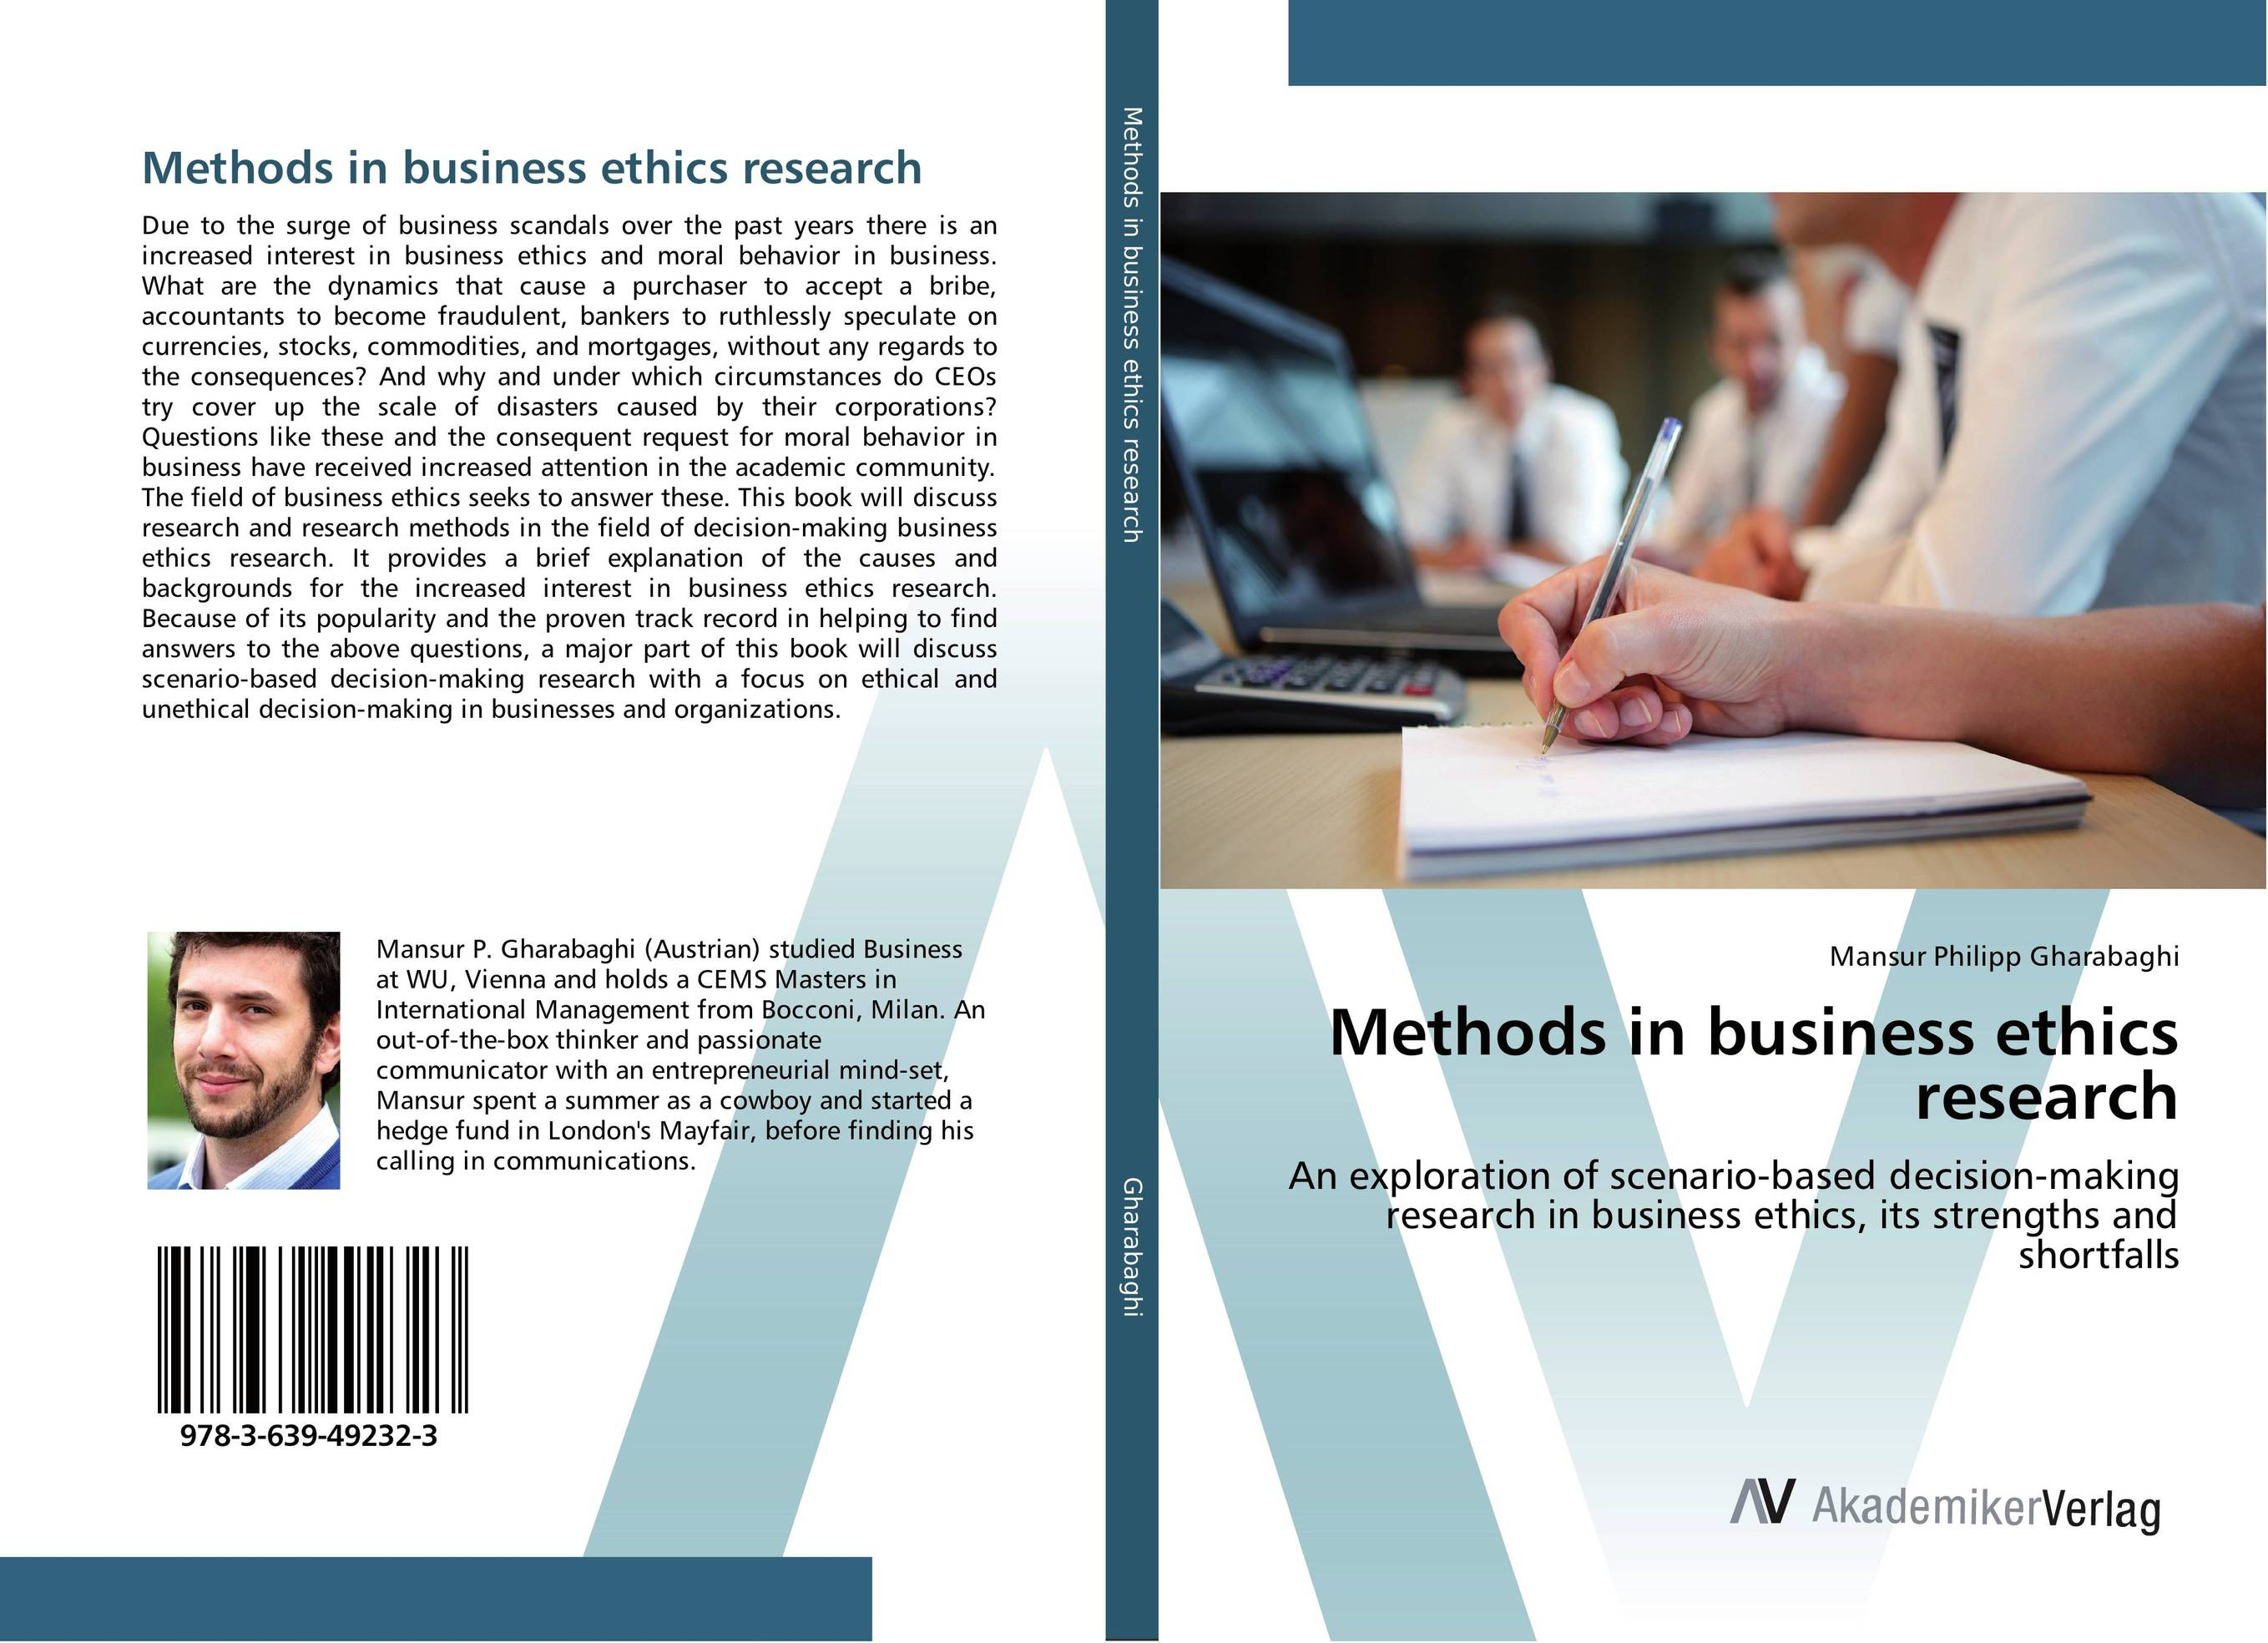 Methods in business ethics research ноутбук hp elitebook 745 g4 z2w05ea amd pro a12 9800b 2 7ghz 8192mb 256gb ssd no odd amd radeon r7 wi fi bluetooth cam 14 0 2560x1440 windows 10 pro 64 bit